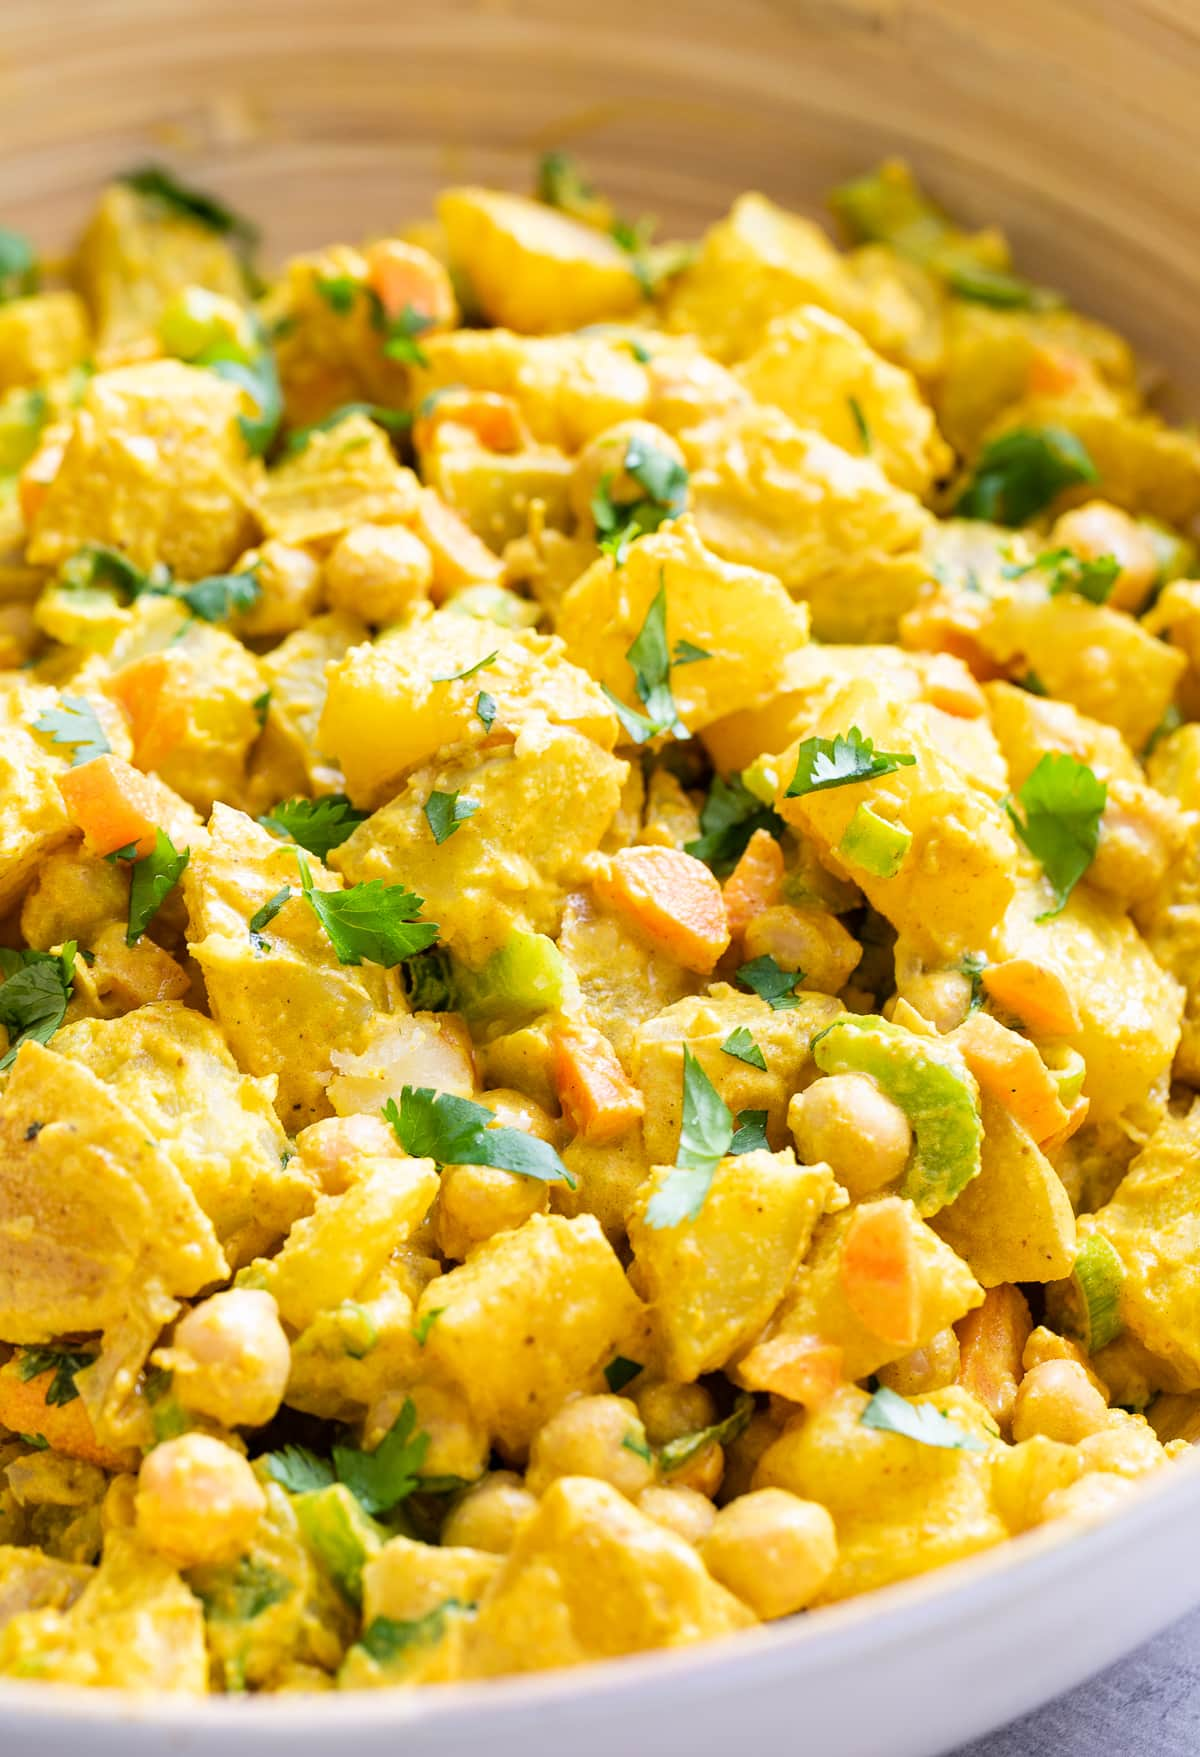 side angle view of vegan curried potato salad in a bowl.